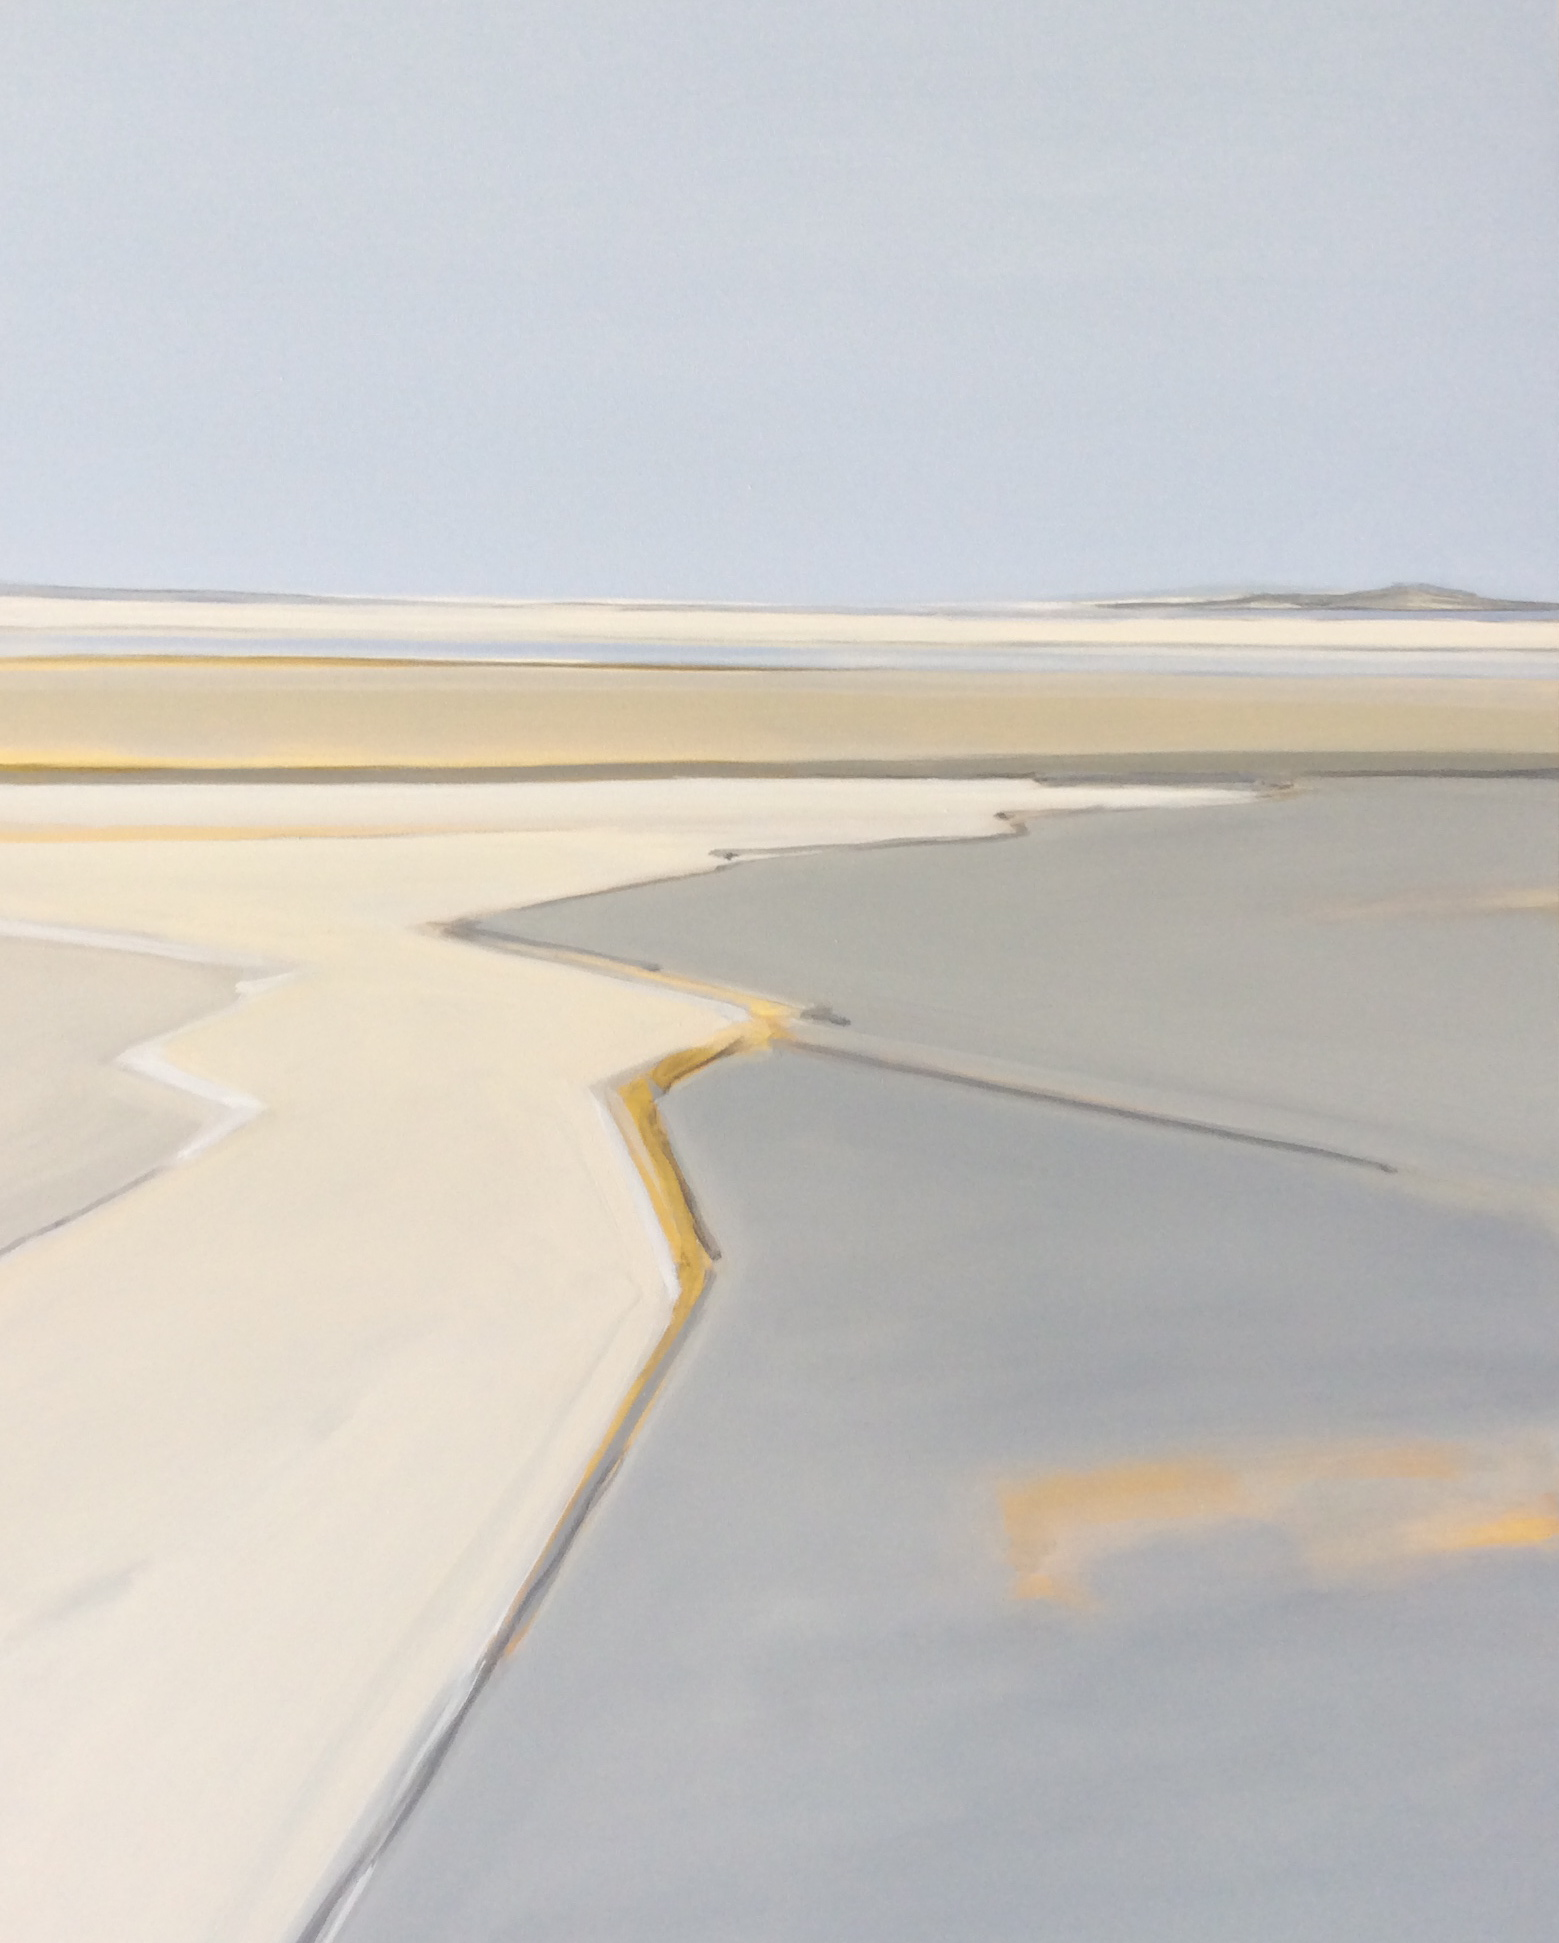 Dry Lakebed 2